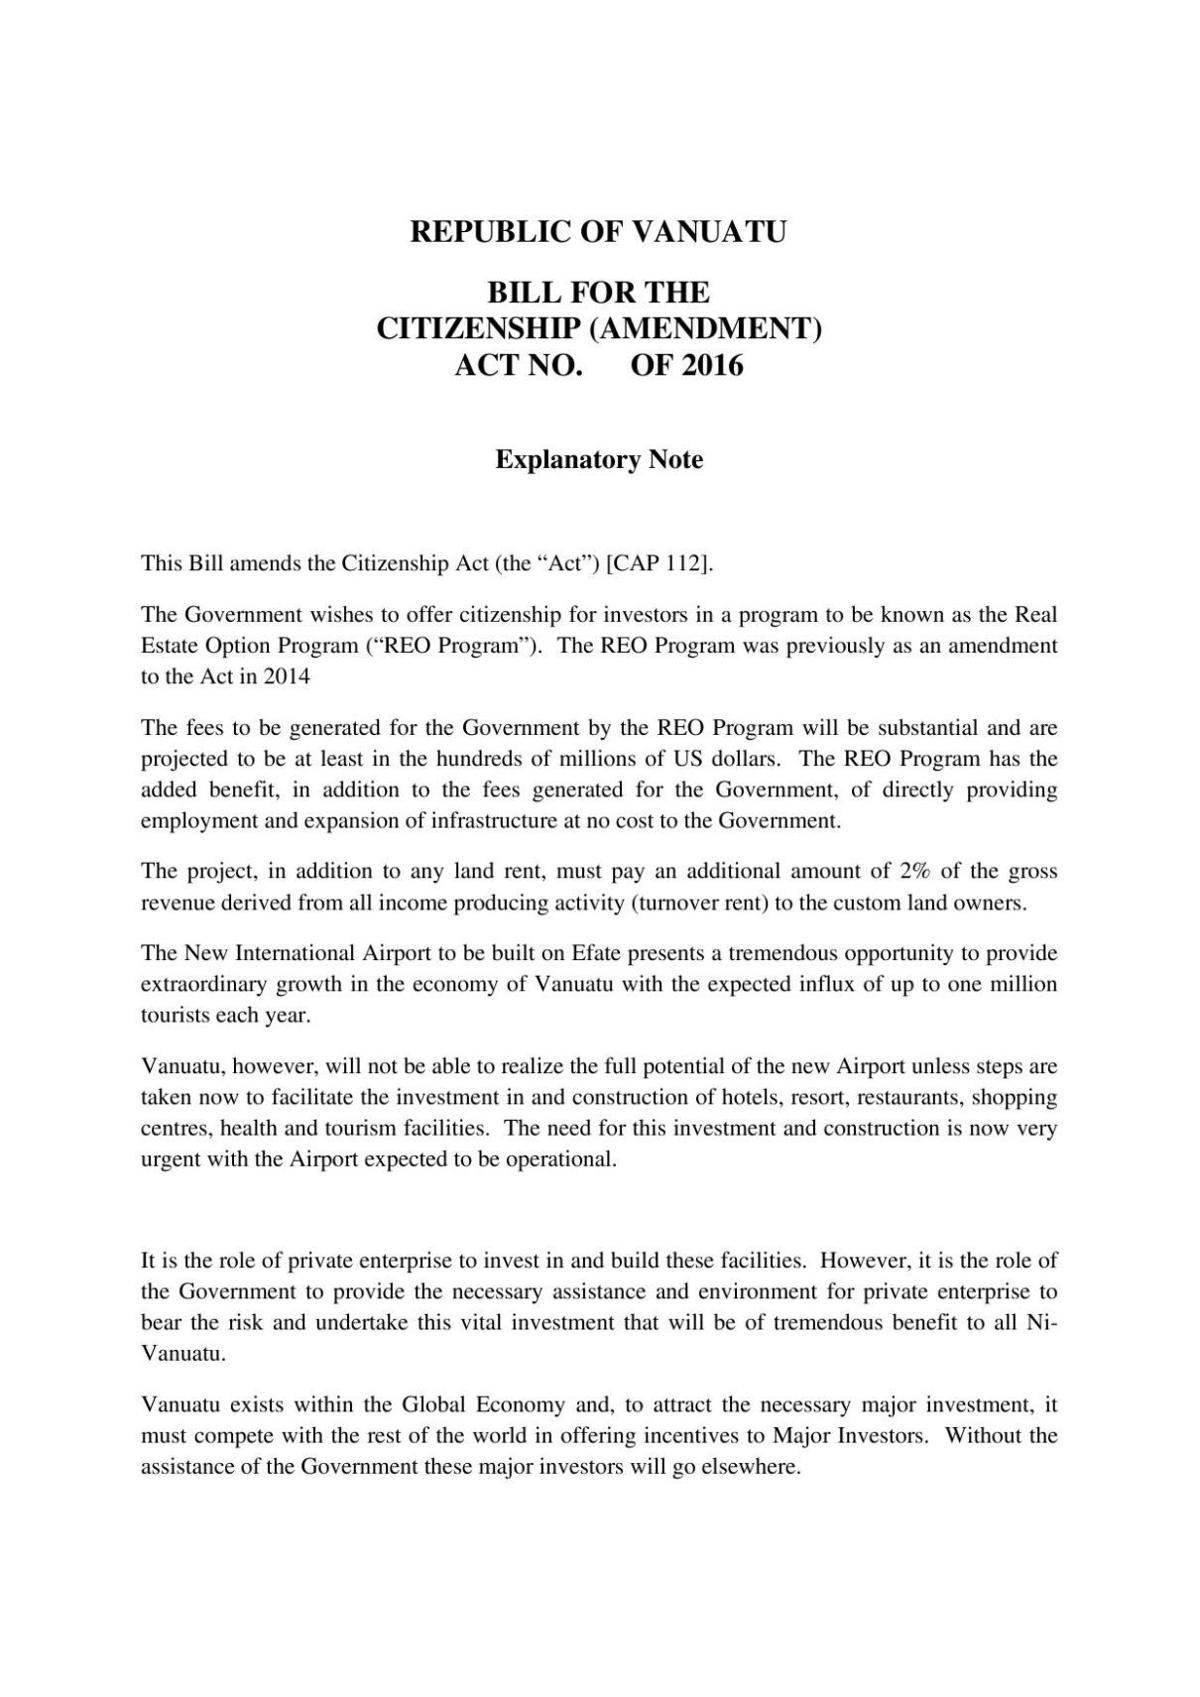 Bill for the Citizenship (Am) Act No. of 2016.pdf